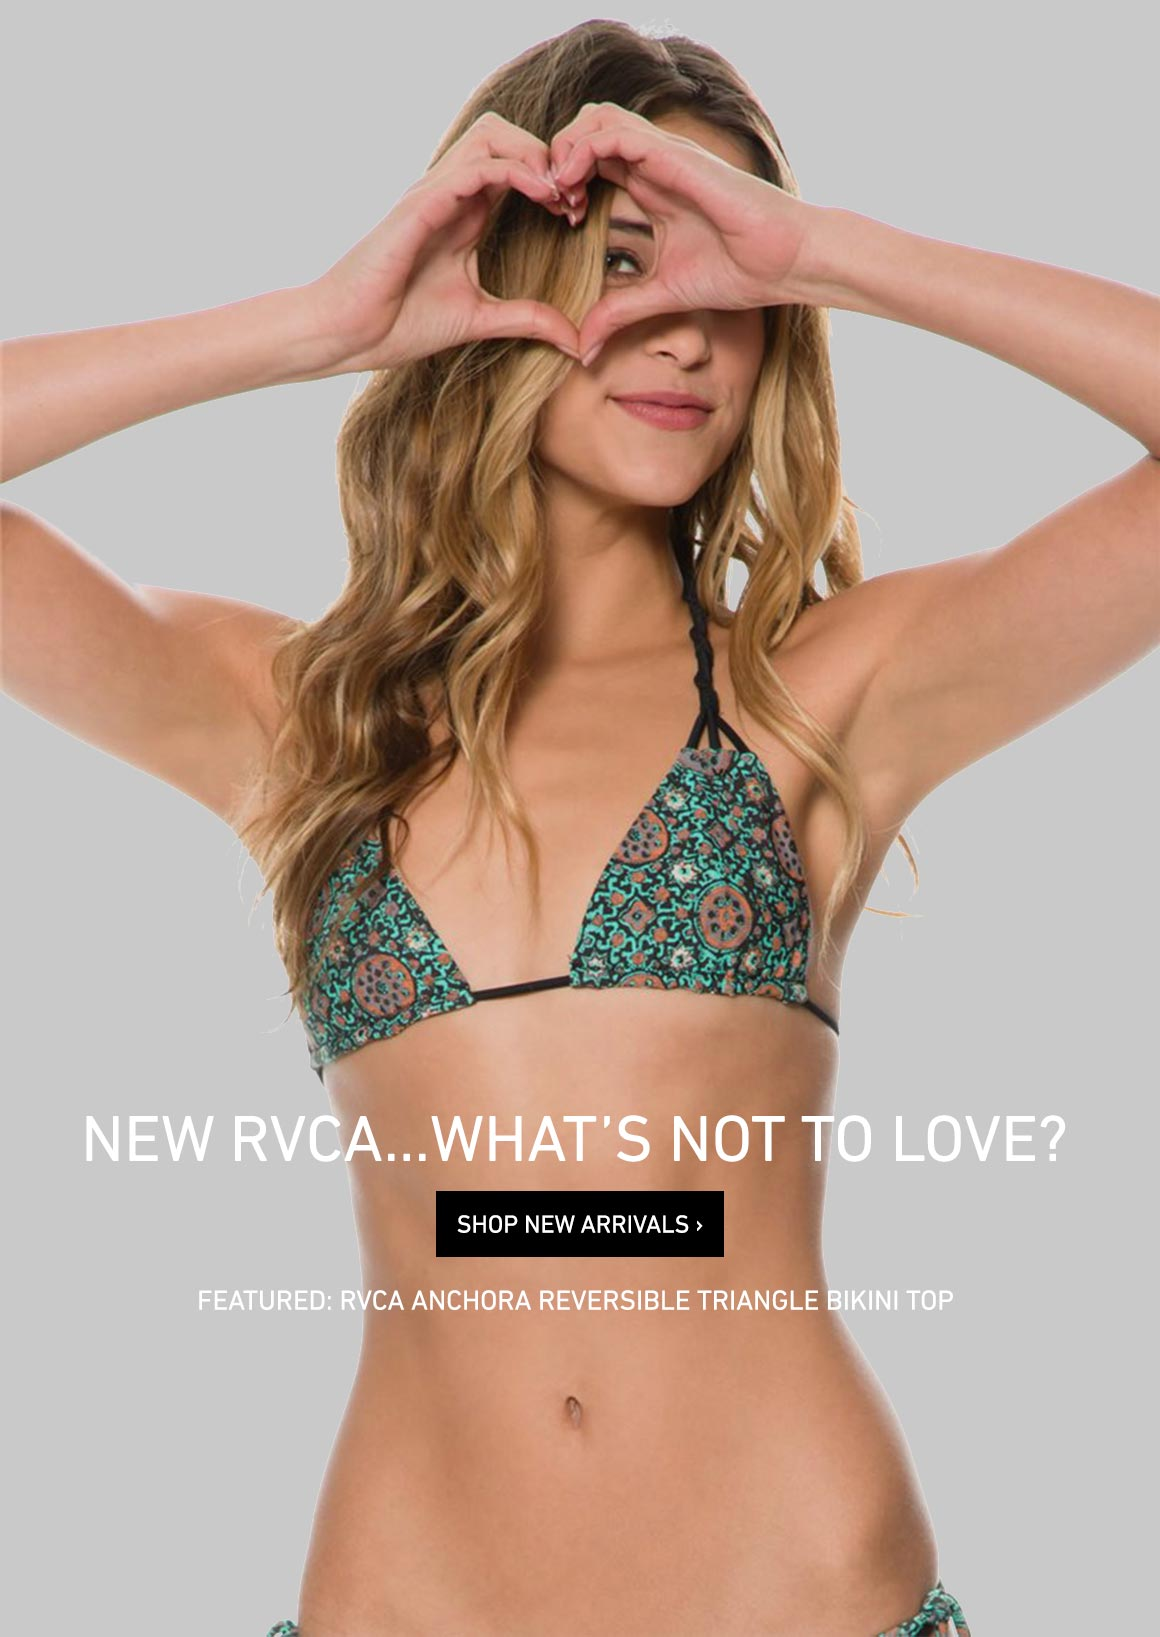 New Arrivals from RVCA